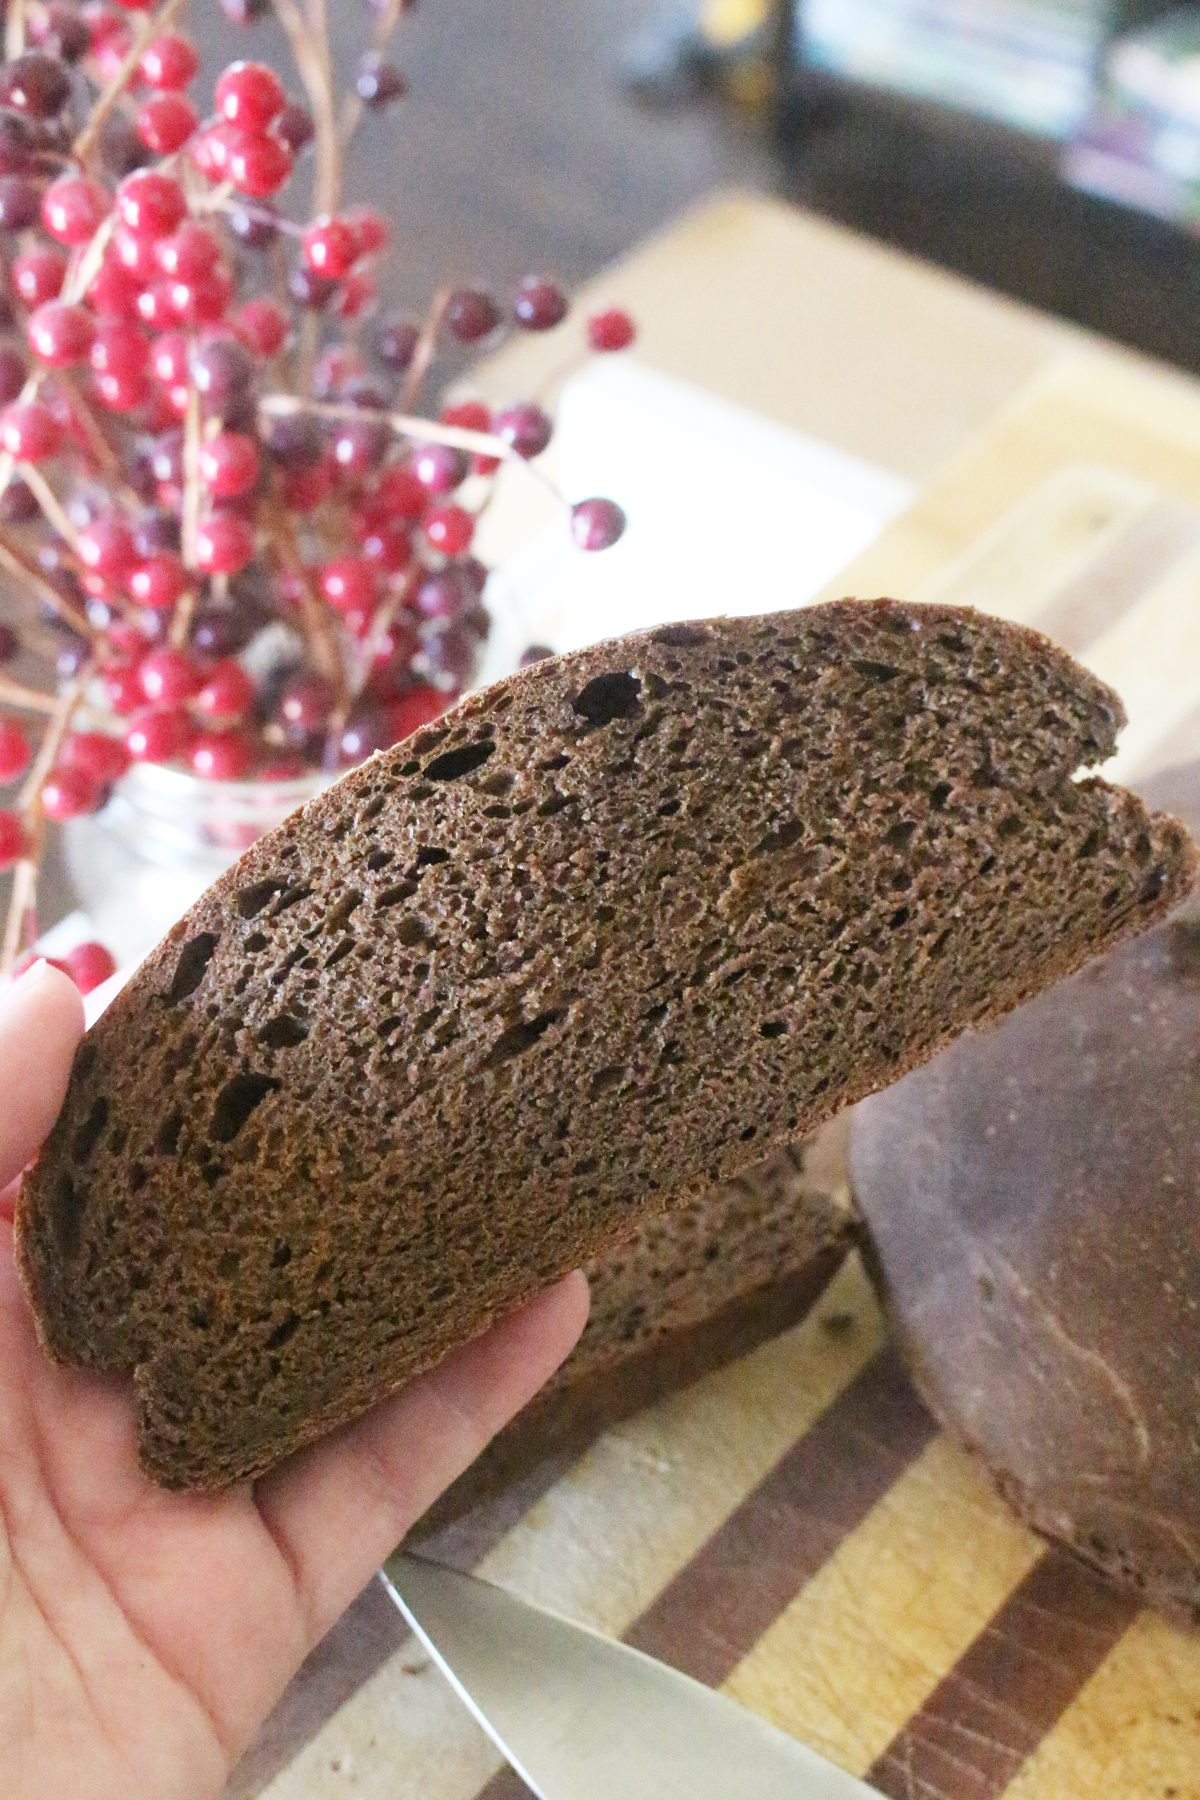 a slice of homemade einkorn brown bread in hand